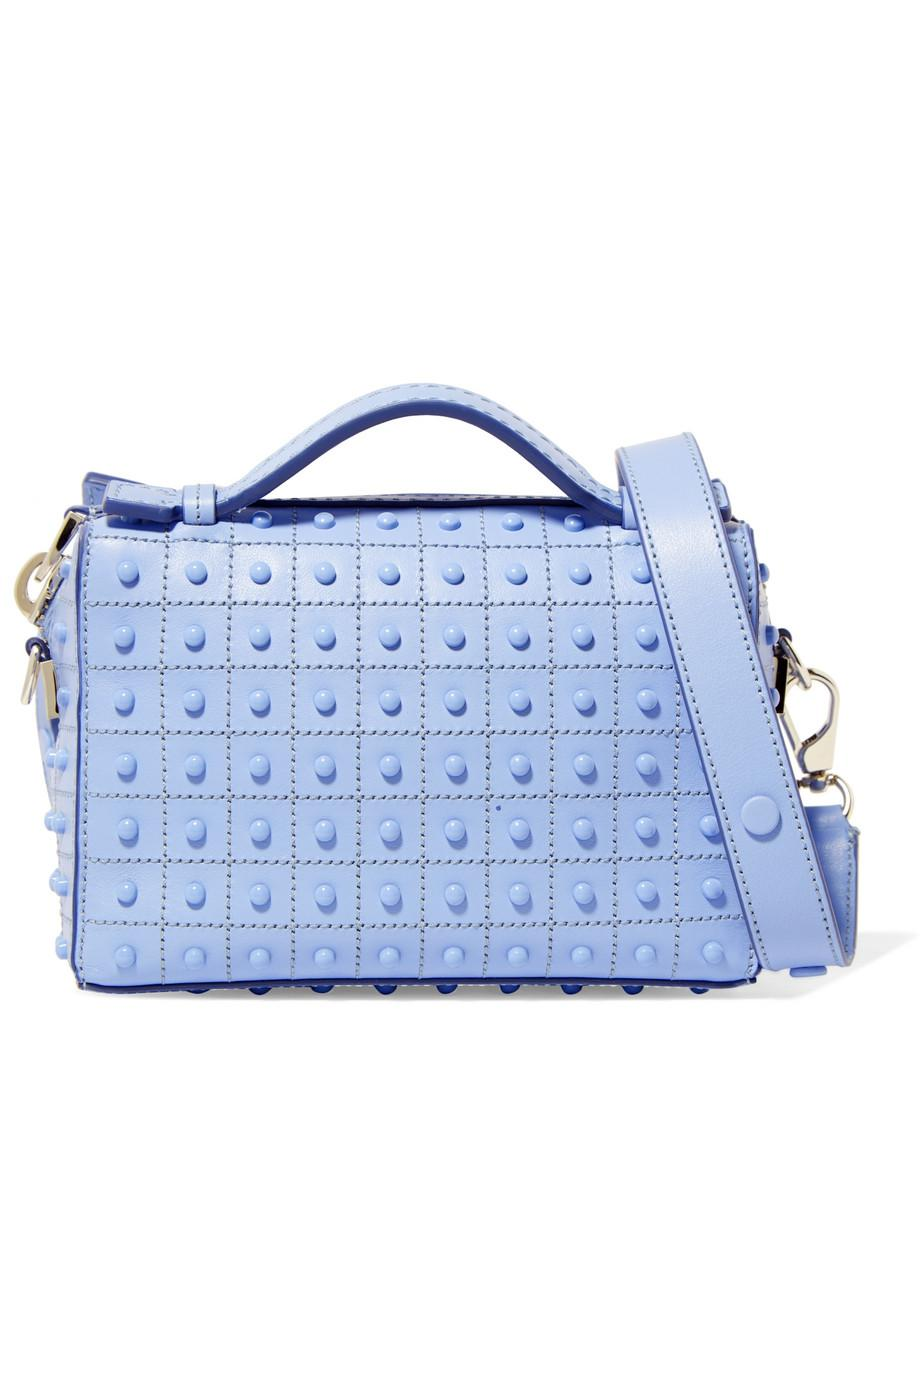 d08e703c3f774 Tod's Bauletto Micro Studded Leather Shoulder Bag in Blue - Lyst